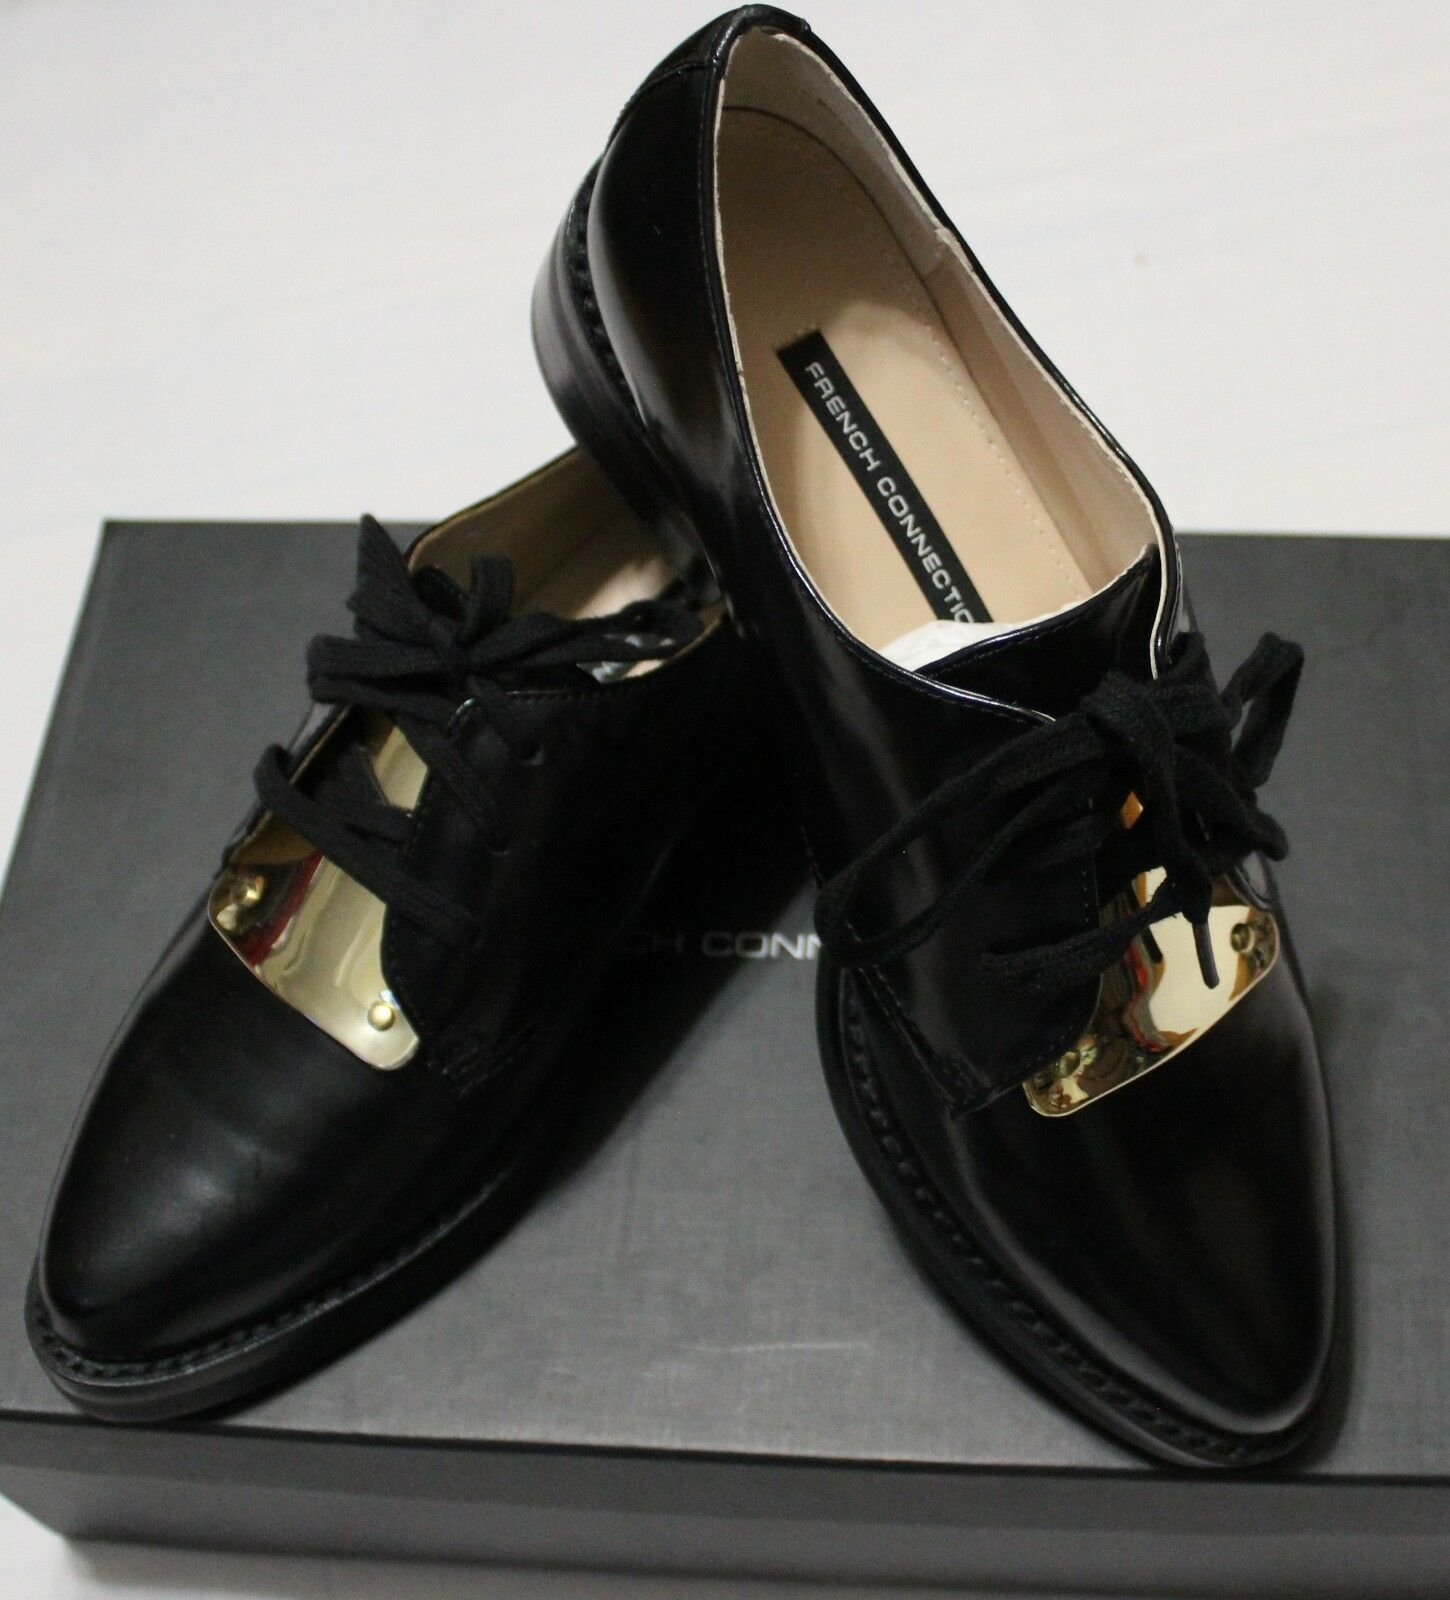 145 FRENCH CONNECTION MAEKO BLACK OXFORD SHOES US 7 EU37